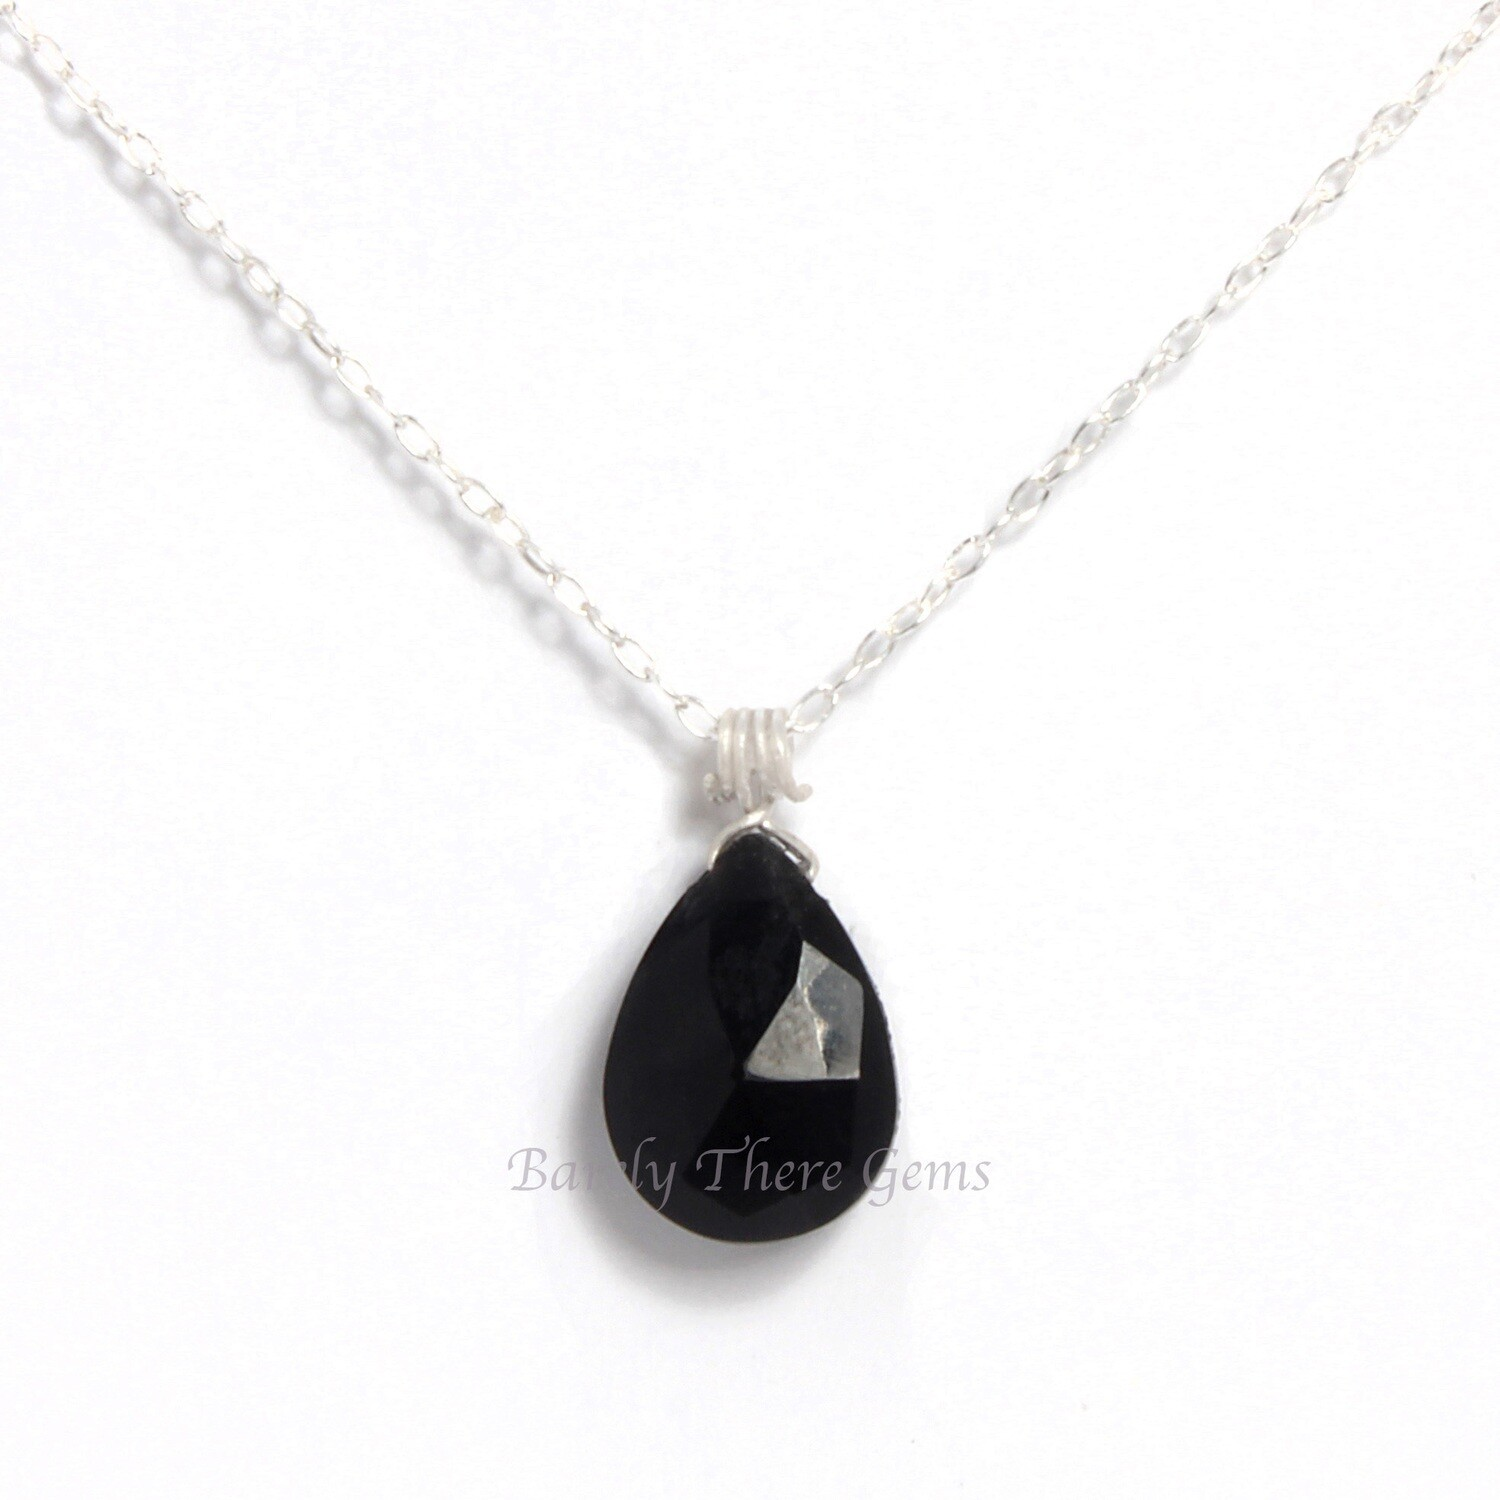 Black Onyx, Sterling Silver, Necklace